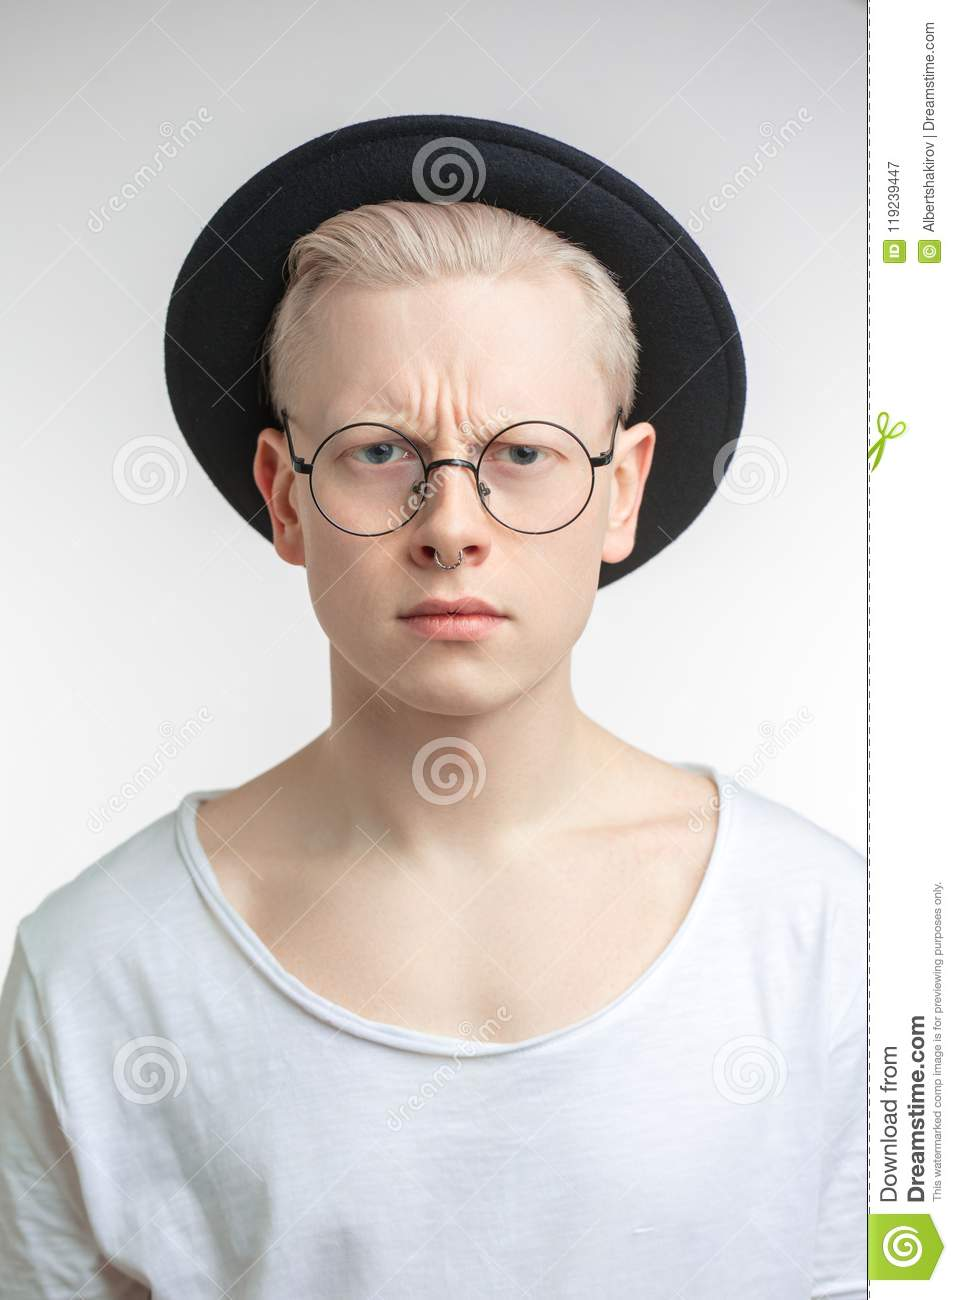 f4f062a2229 Dissatisfied handsome blonde hipster man with frowned brows wearing black  hat over white background. People negative emotions concept